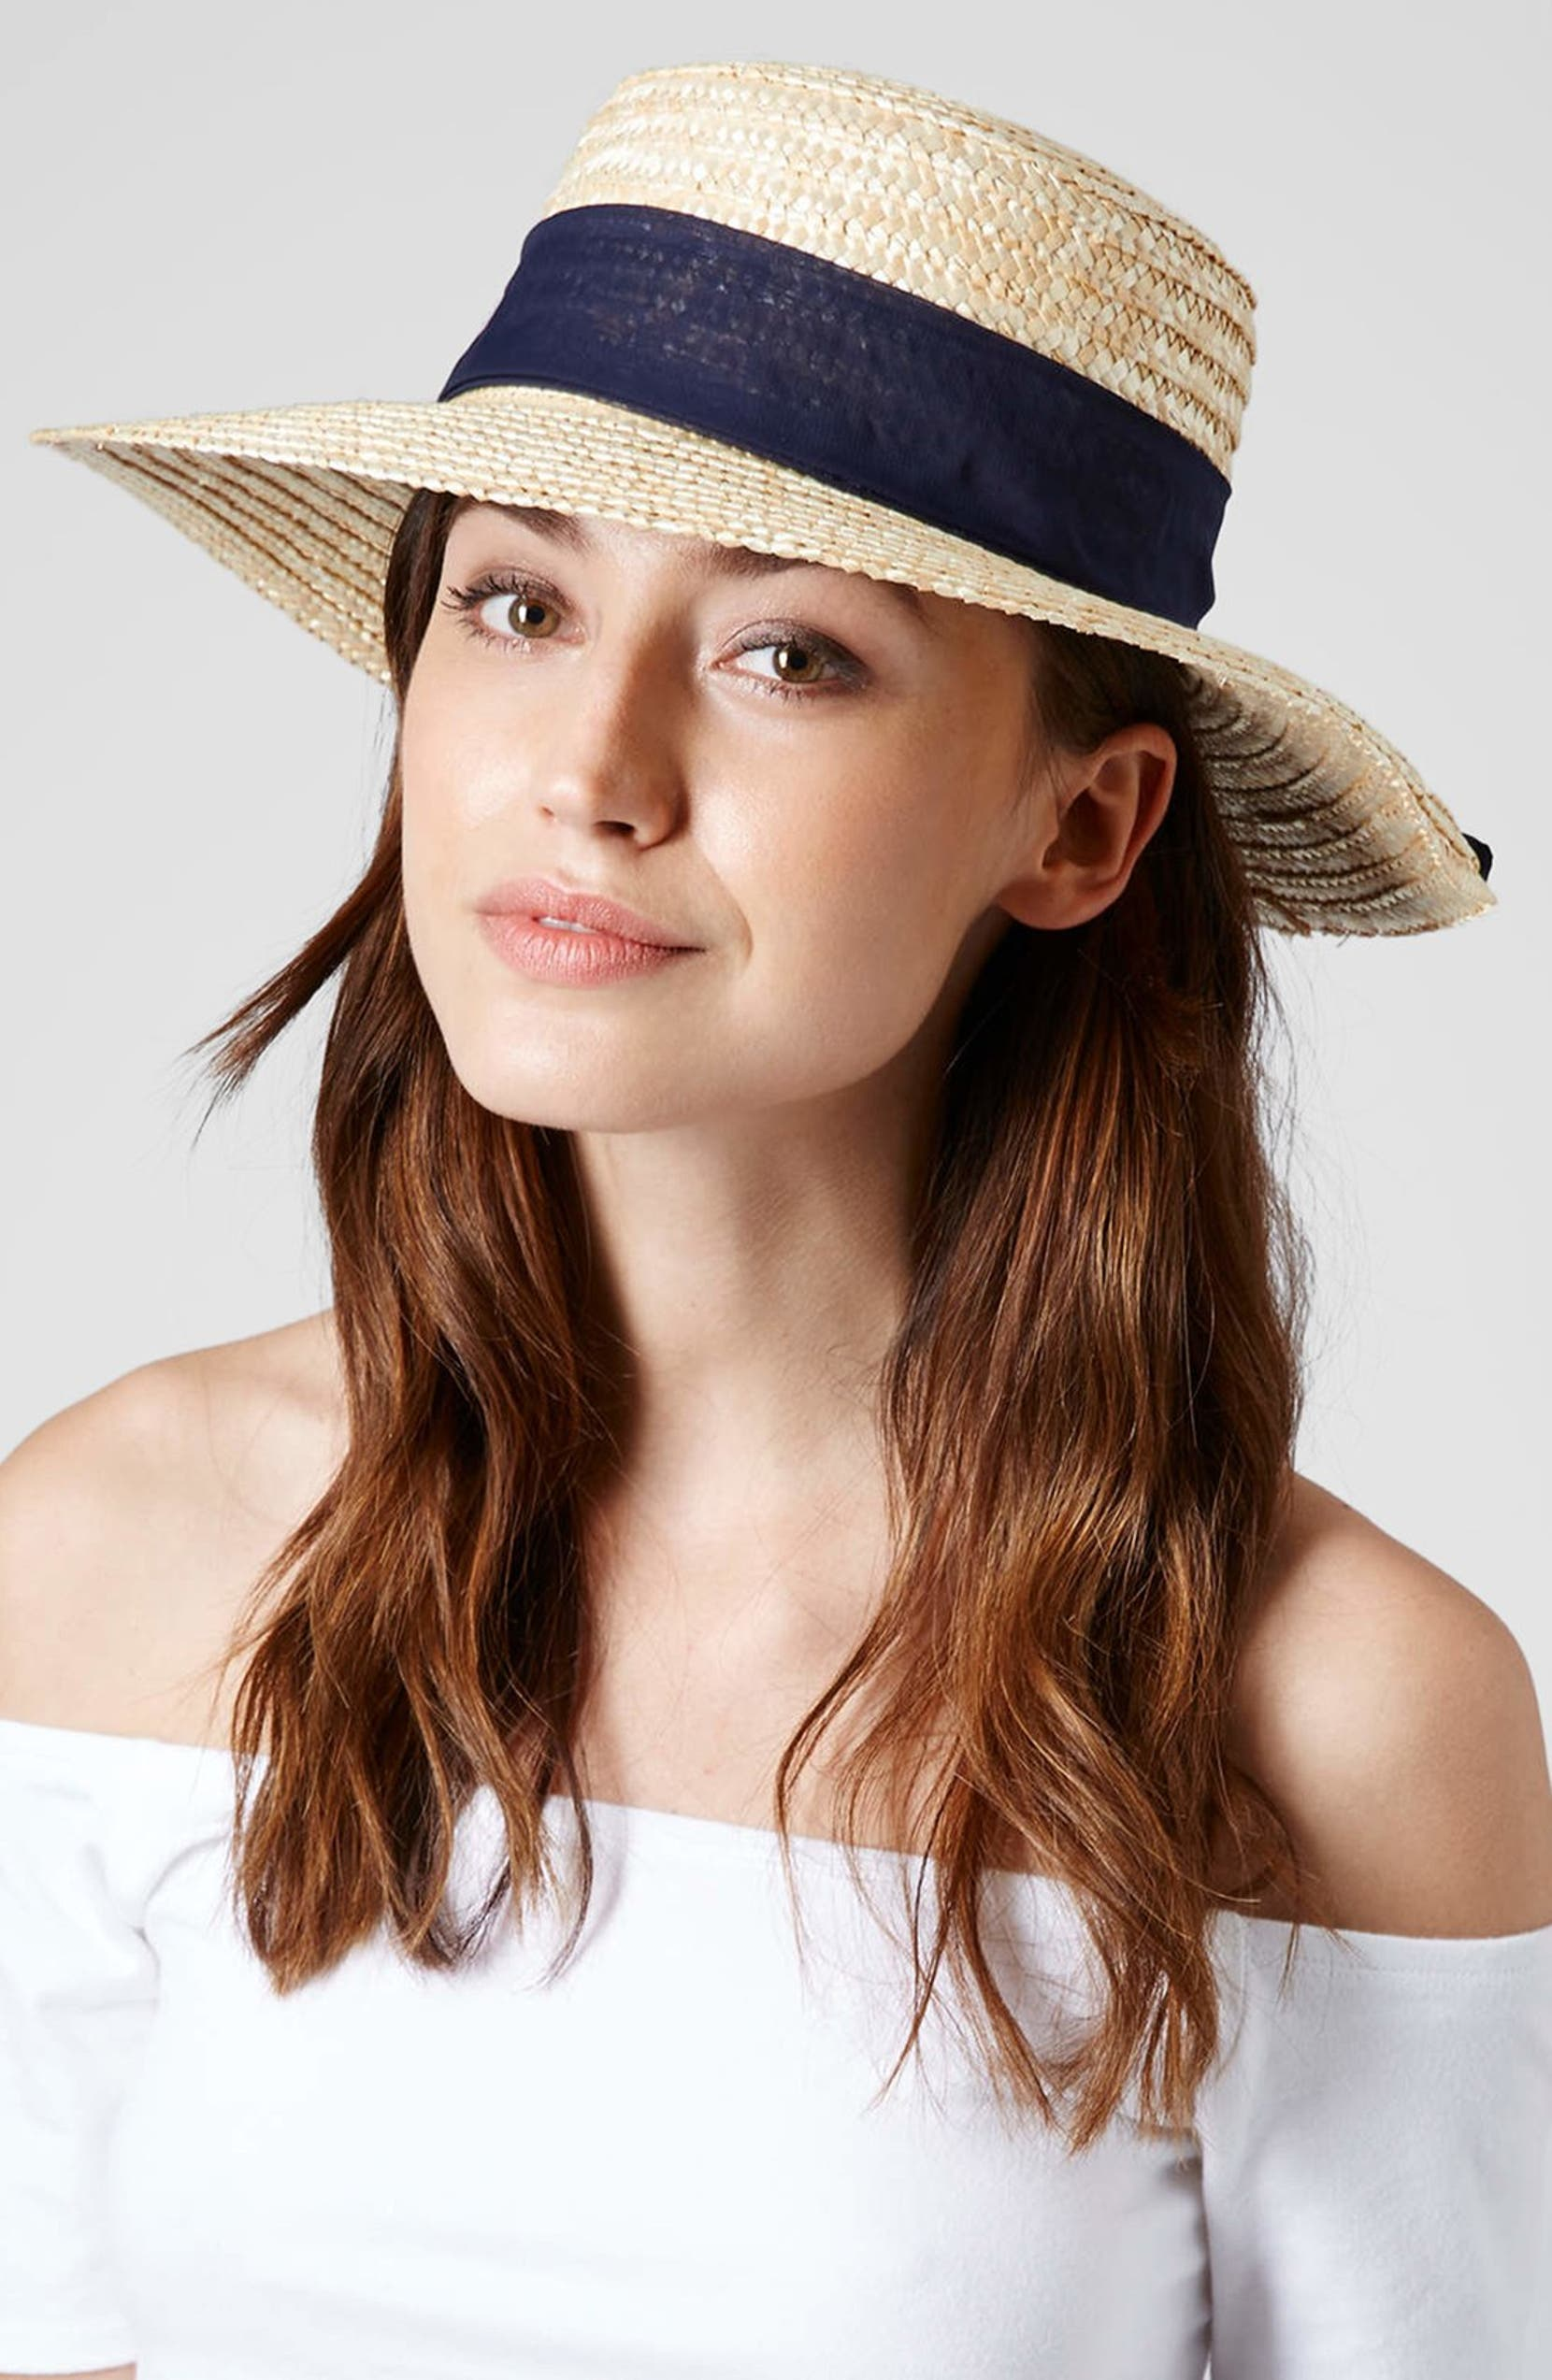 Topshop Straw Boater Hat  446eae60563